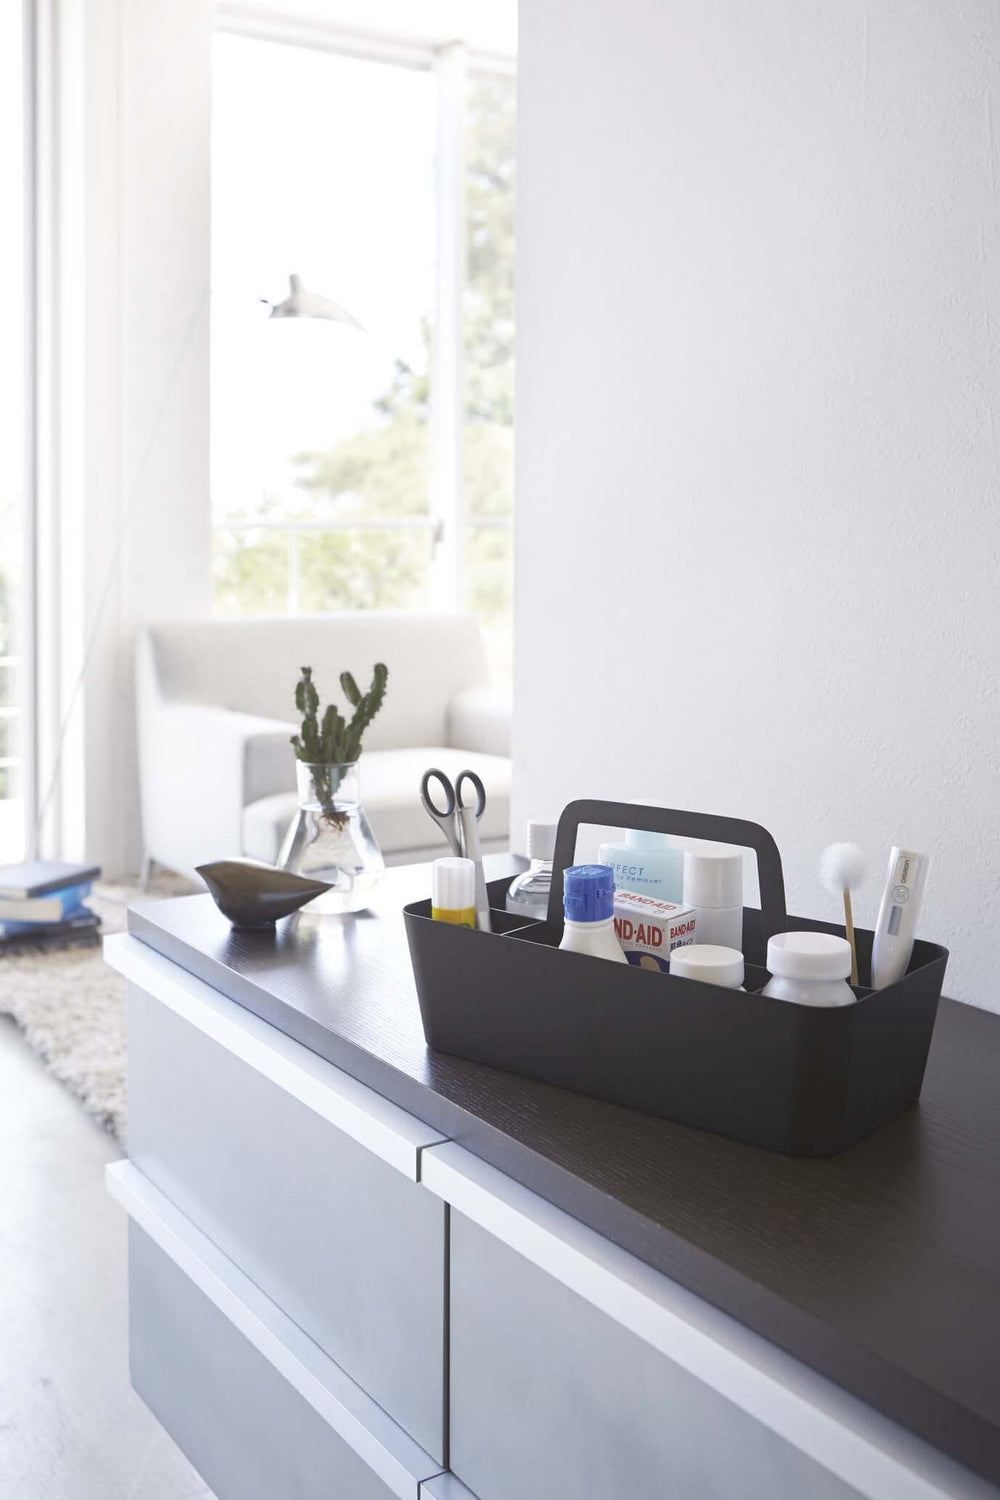 Large handled black storage caddy by Yamazaki, holding first-aid items sitting on a dresser.